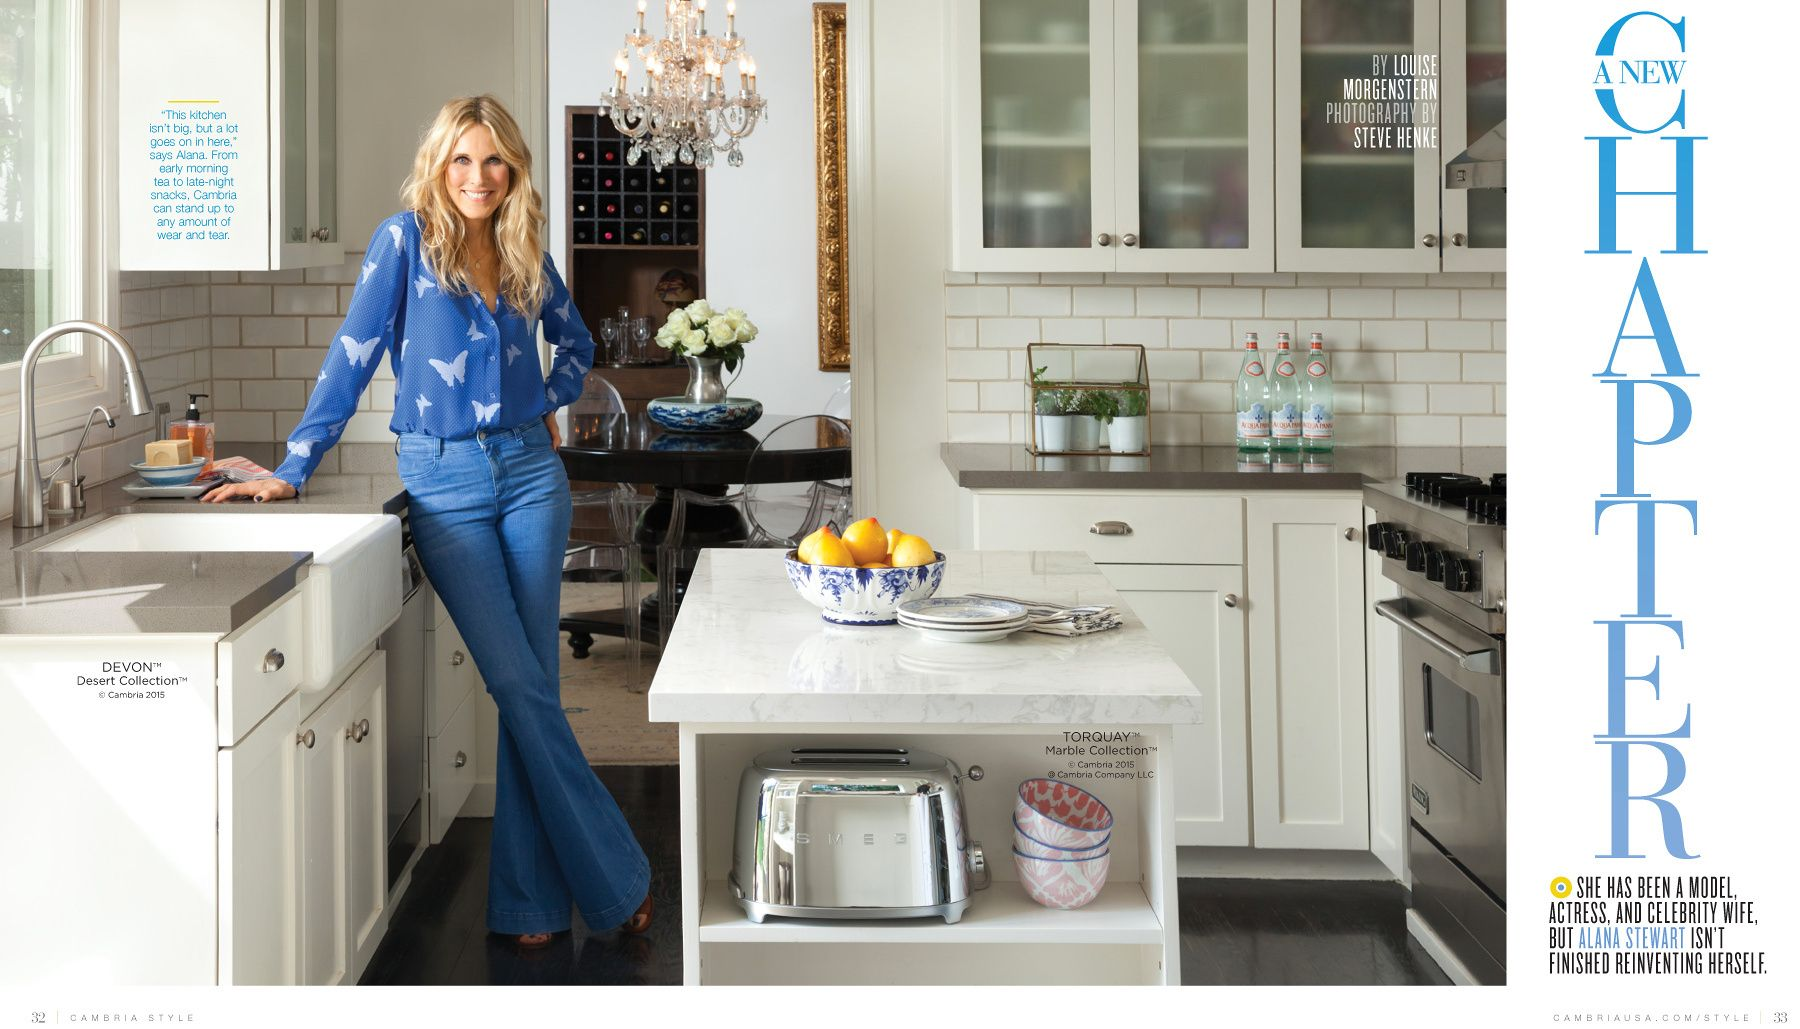 1cambria_style_alana_stewart_fashion_kitchen.jpg